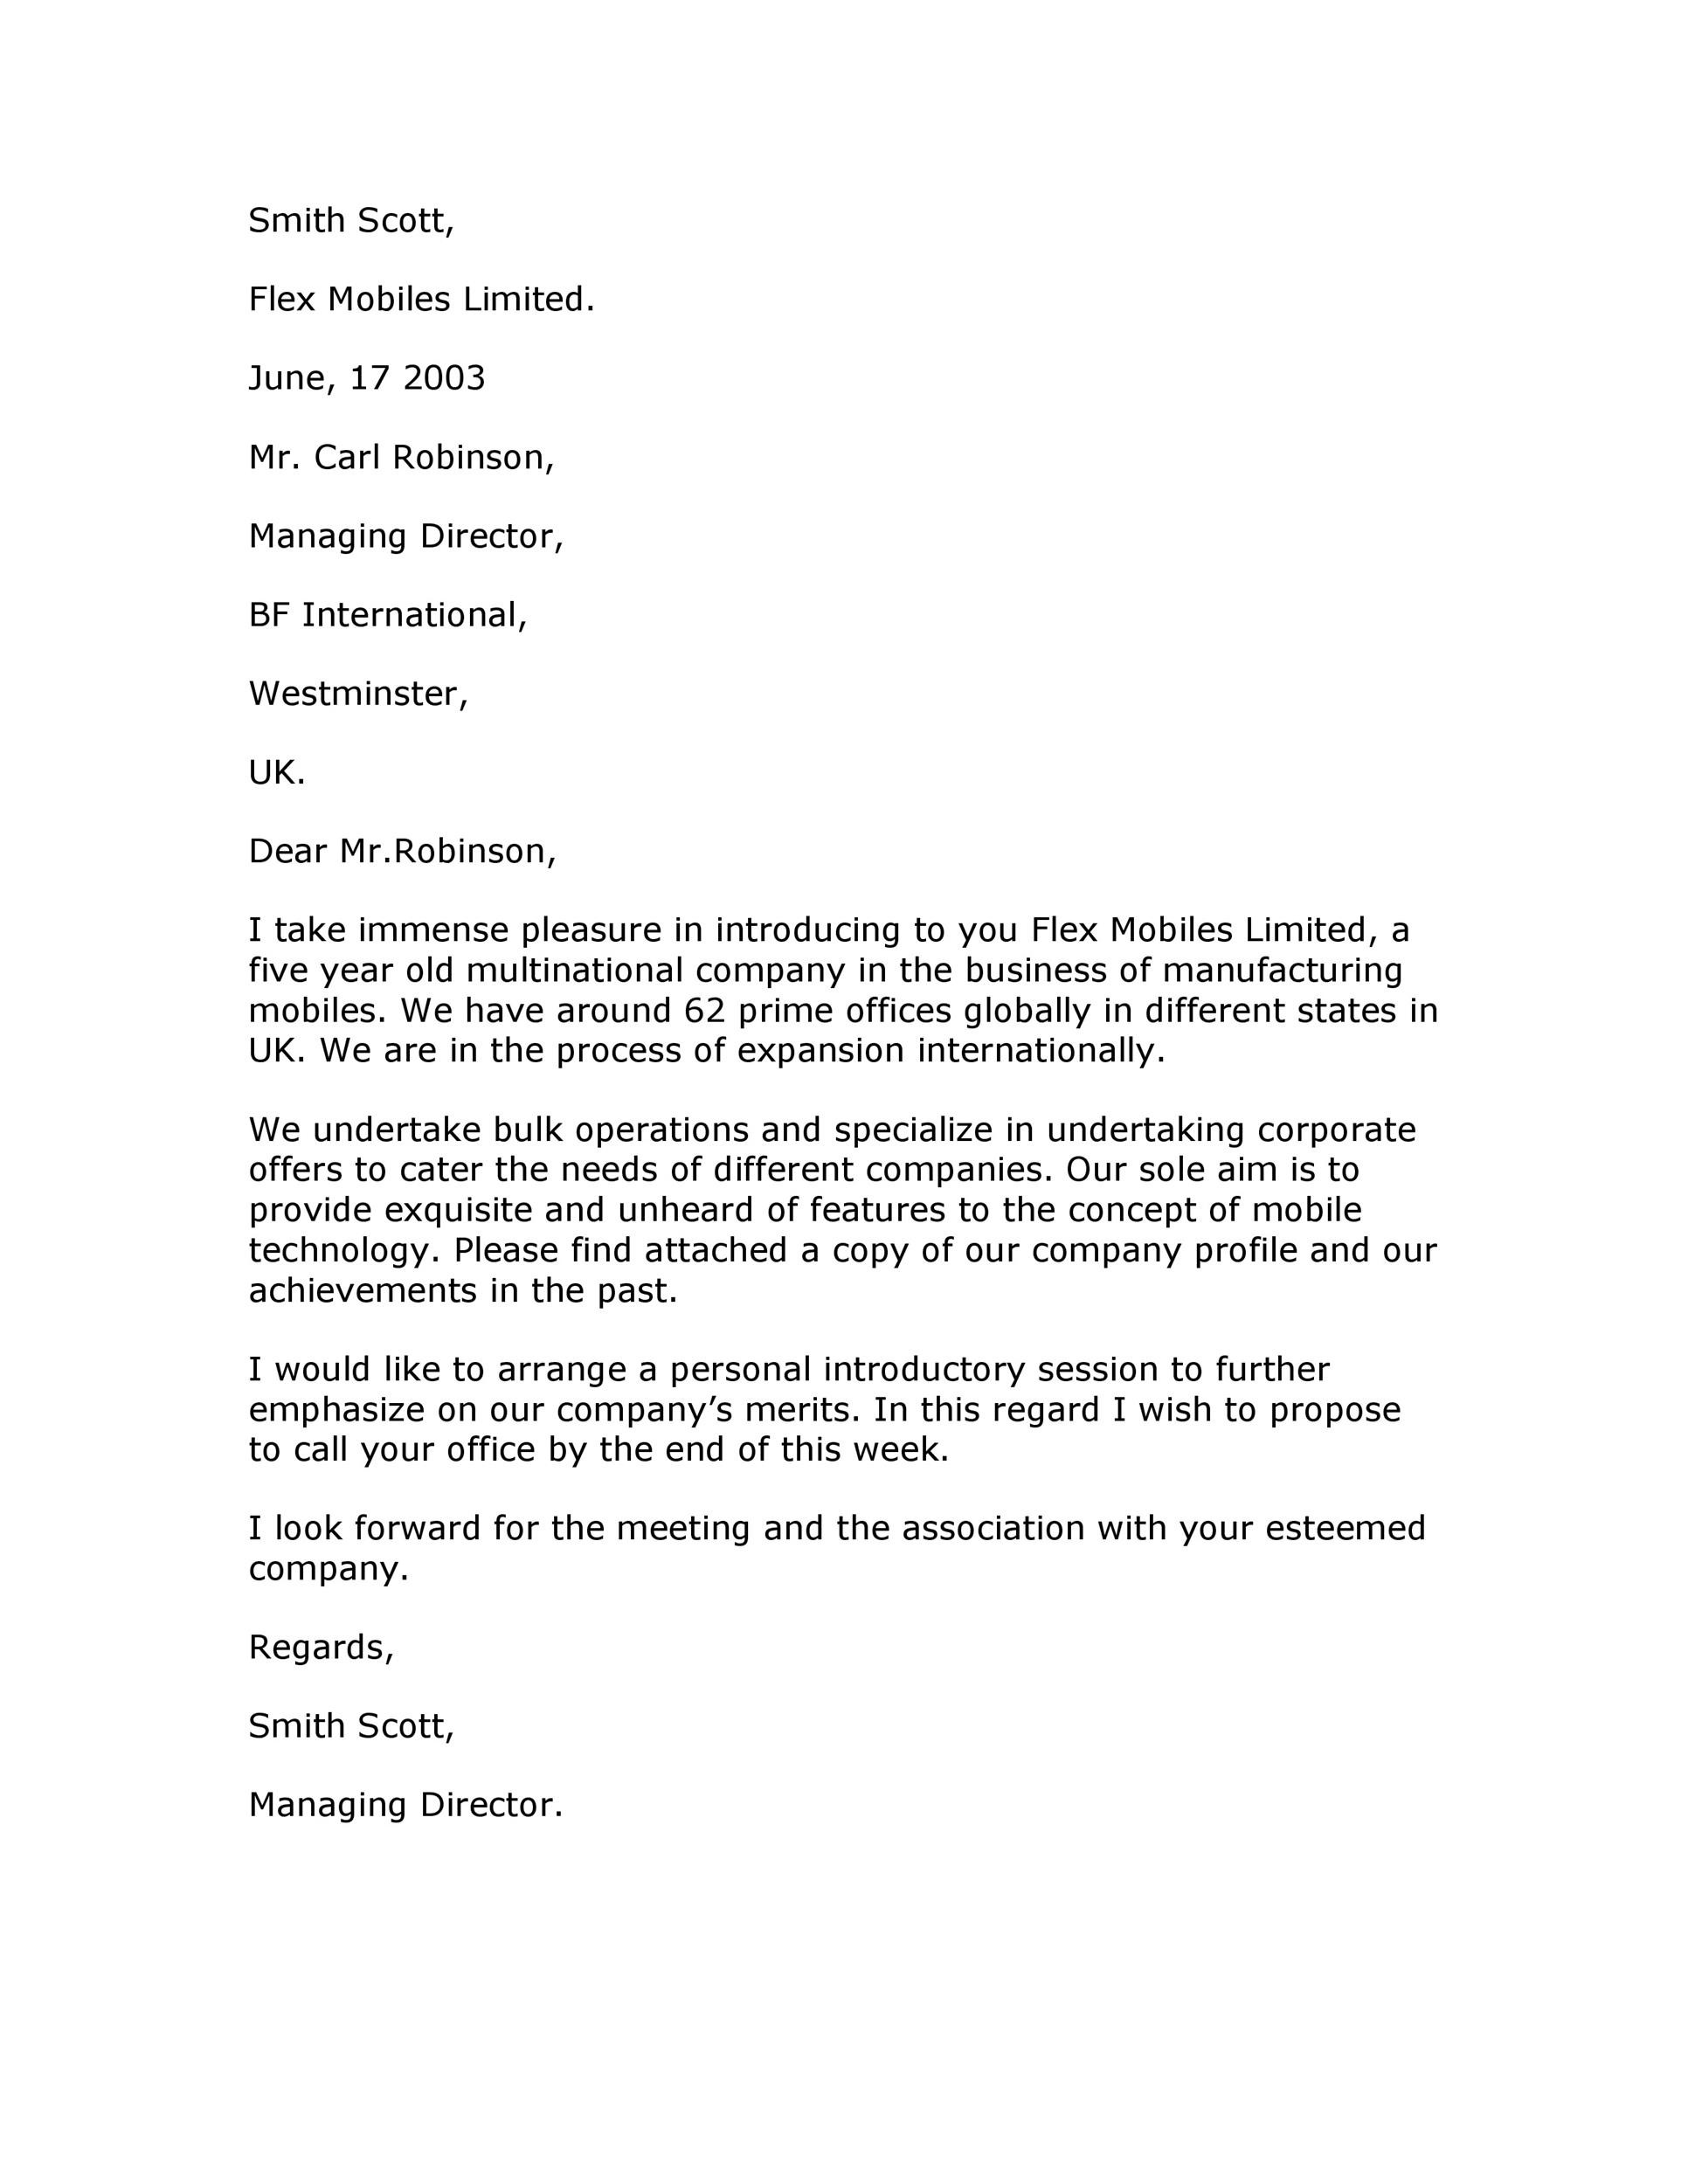 Free business introduction letter 10